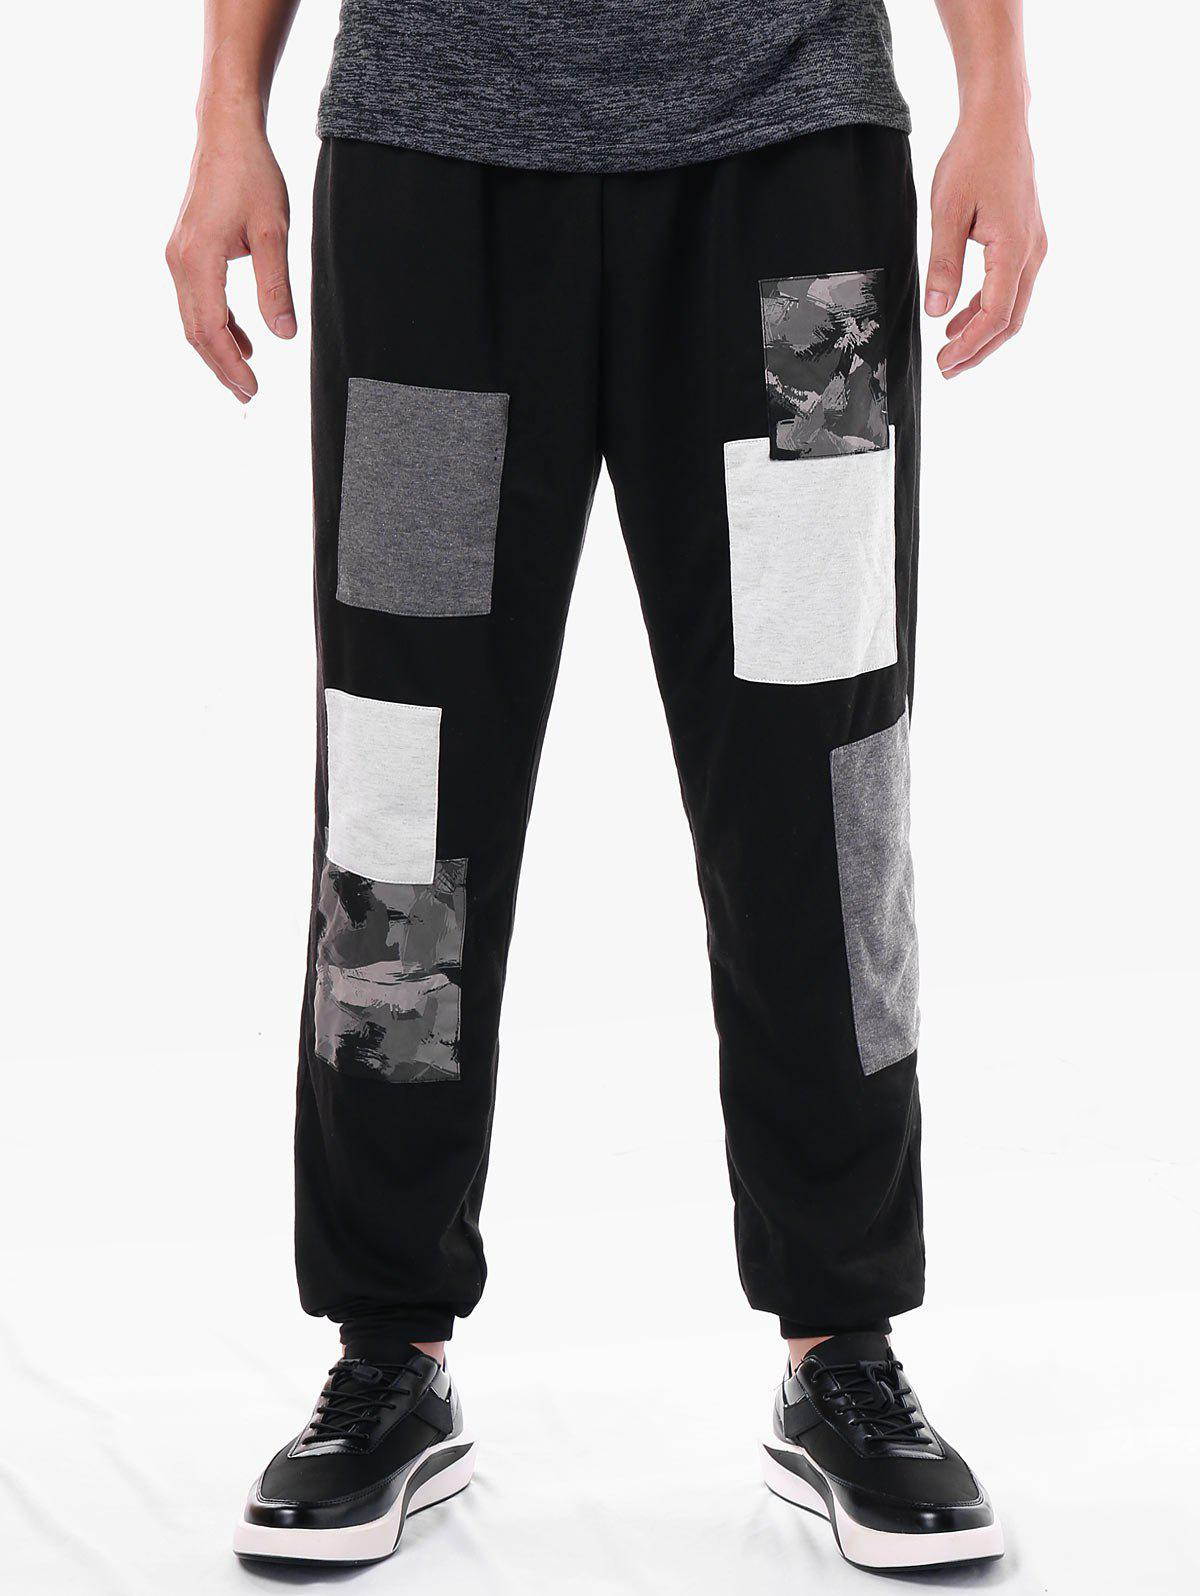 Hot Casual Narrow Feet Paint Print Panel Pants